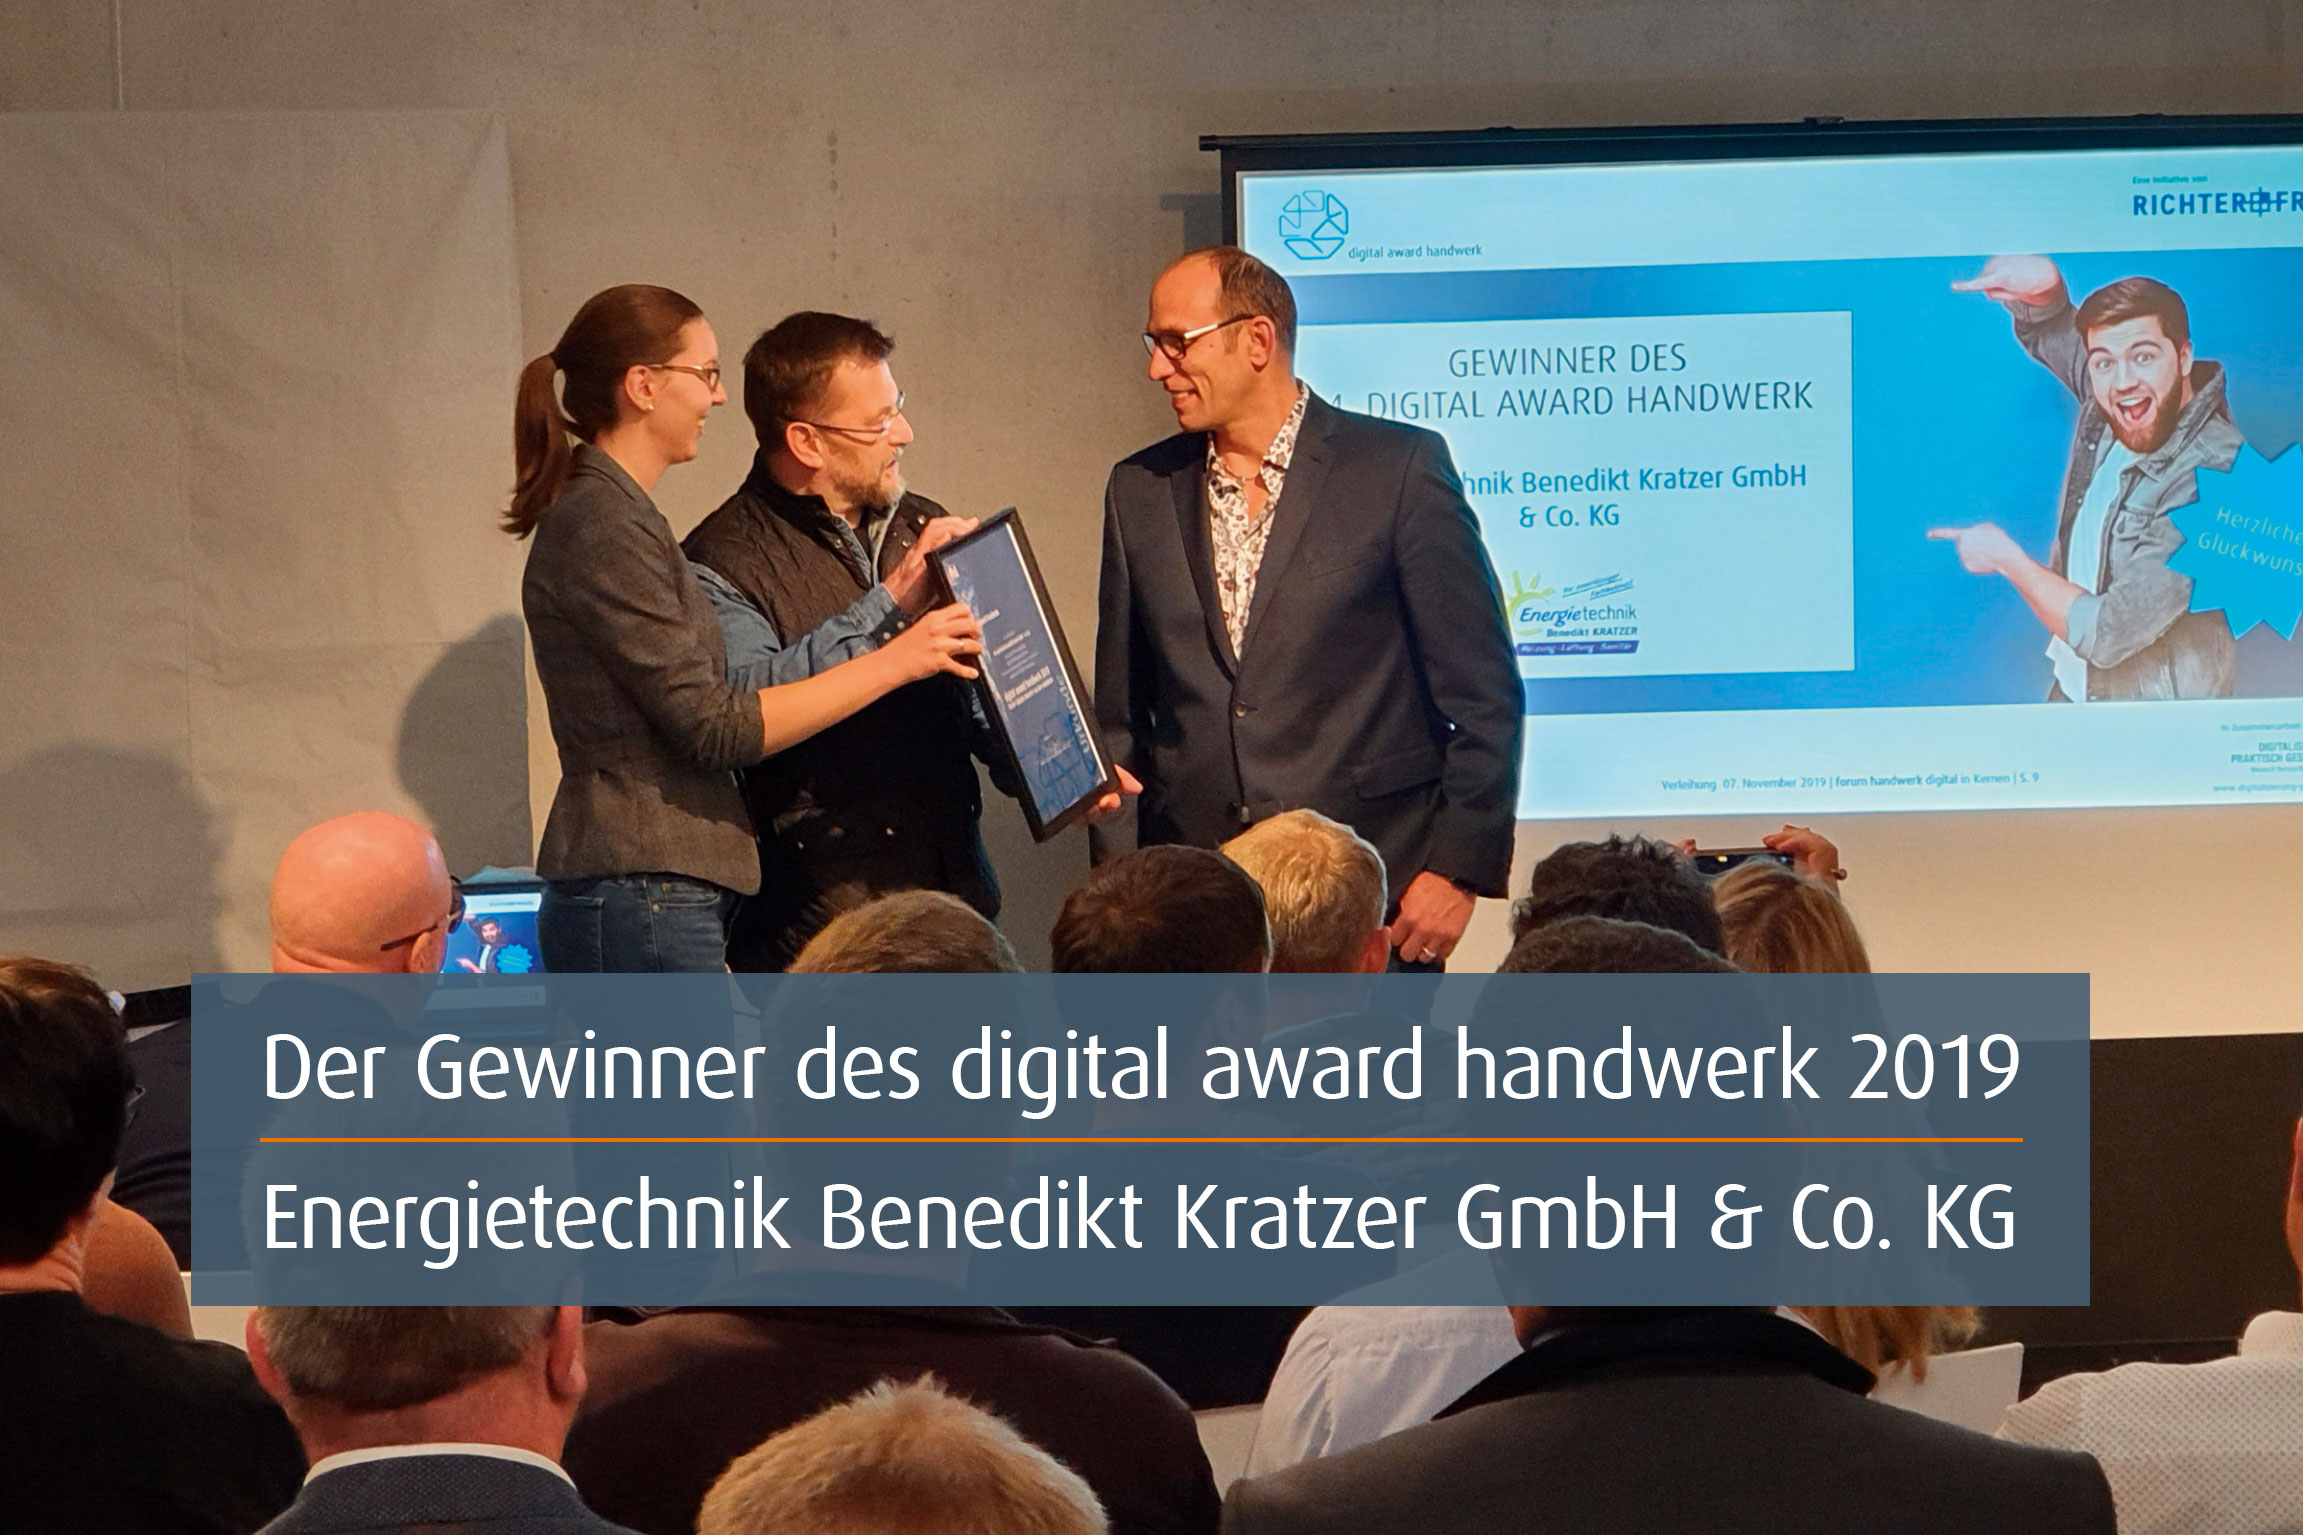 digital award handwerk 2019